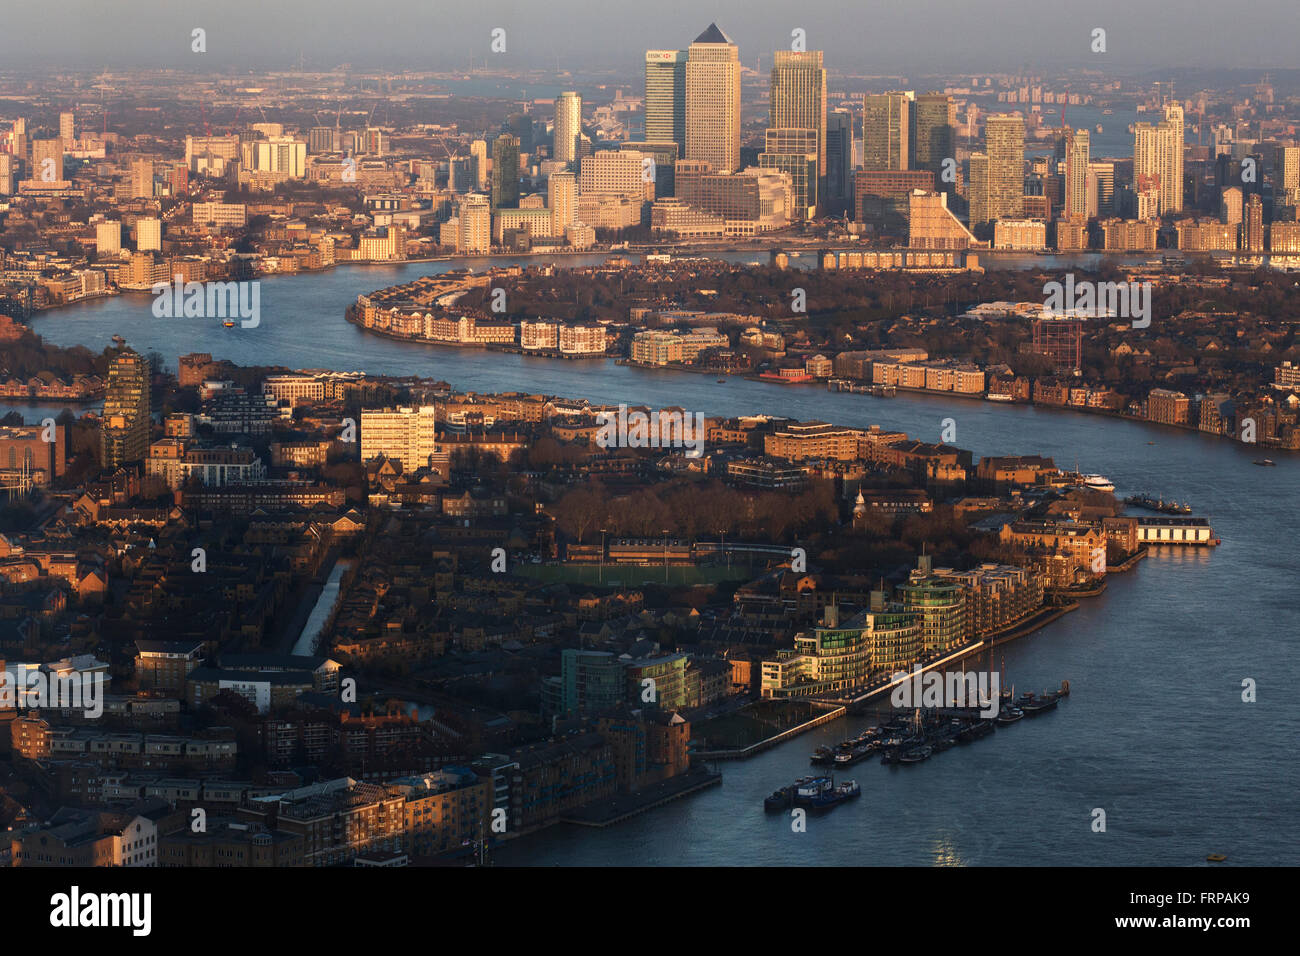 London Docklands aerial view, River Thames, Docklands and Canary Wharf of Tower Hamlets in London  Photo: Pixstory - Stock Image